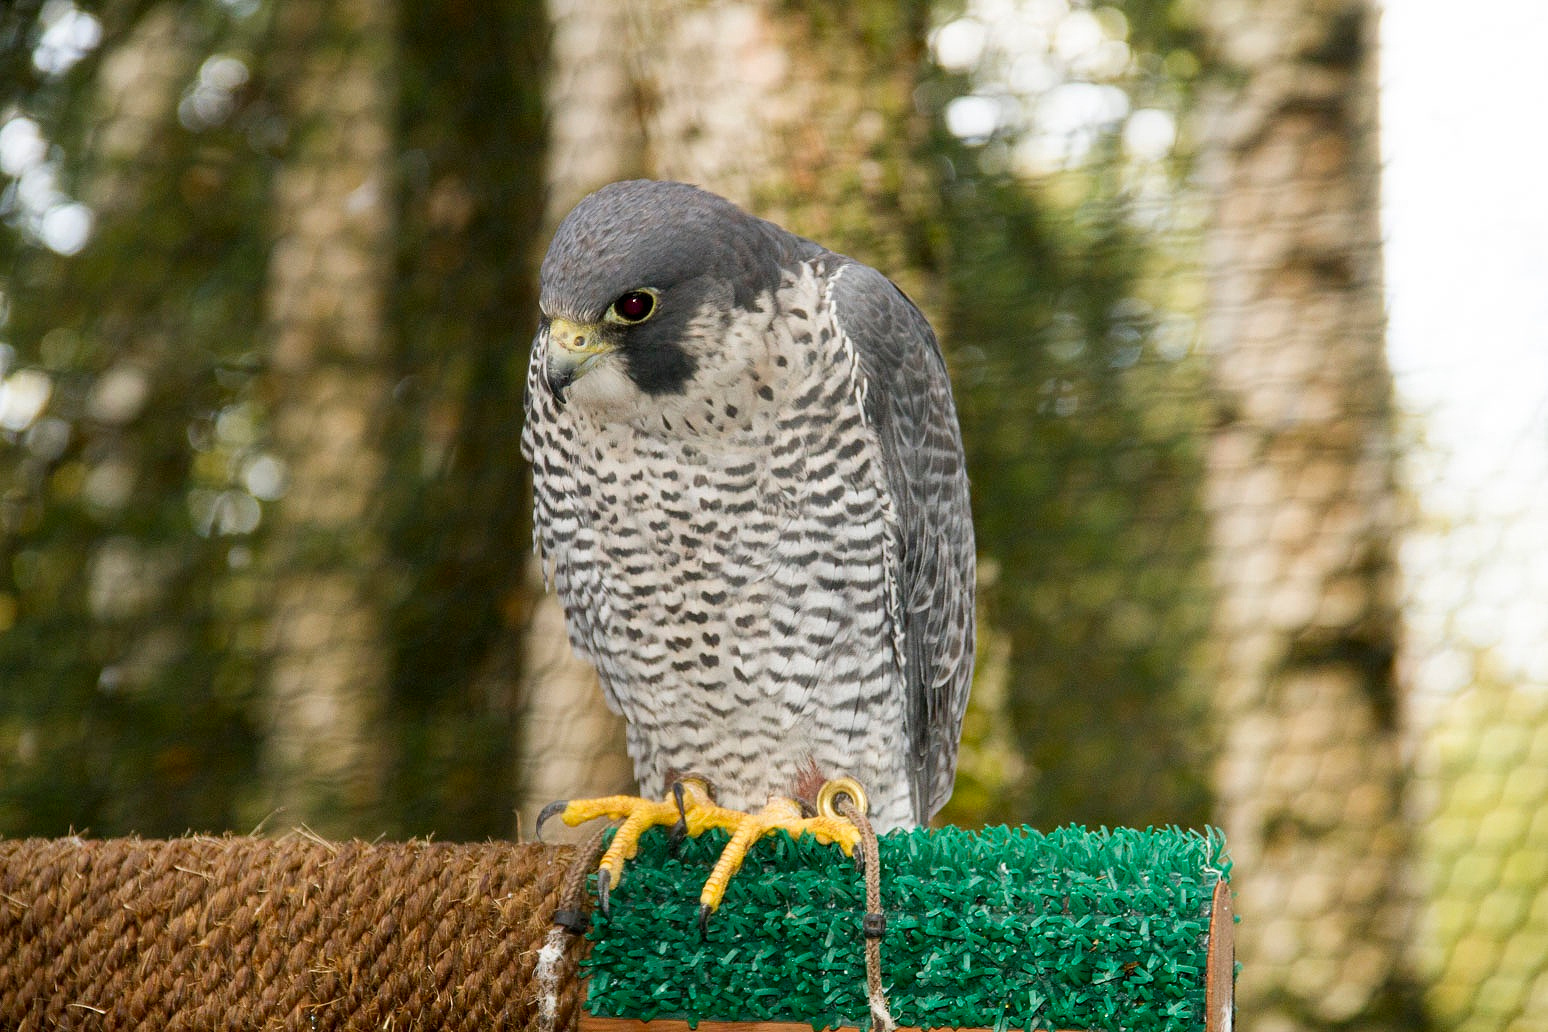 Peale's peregrine falcon and merlin.